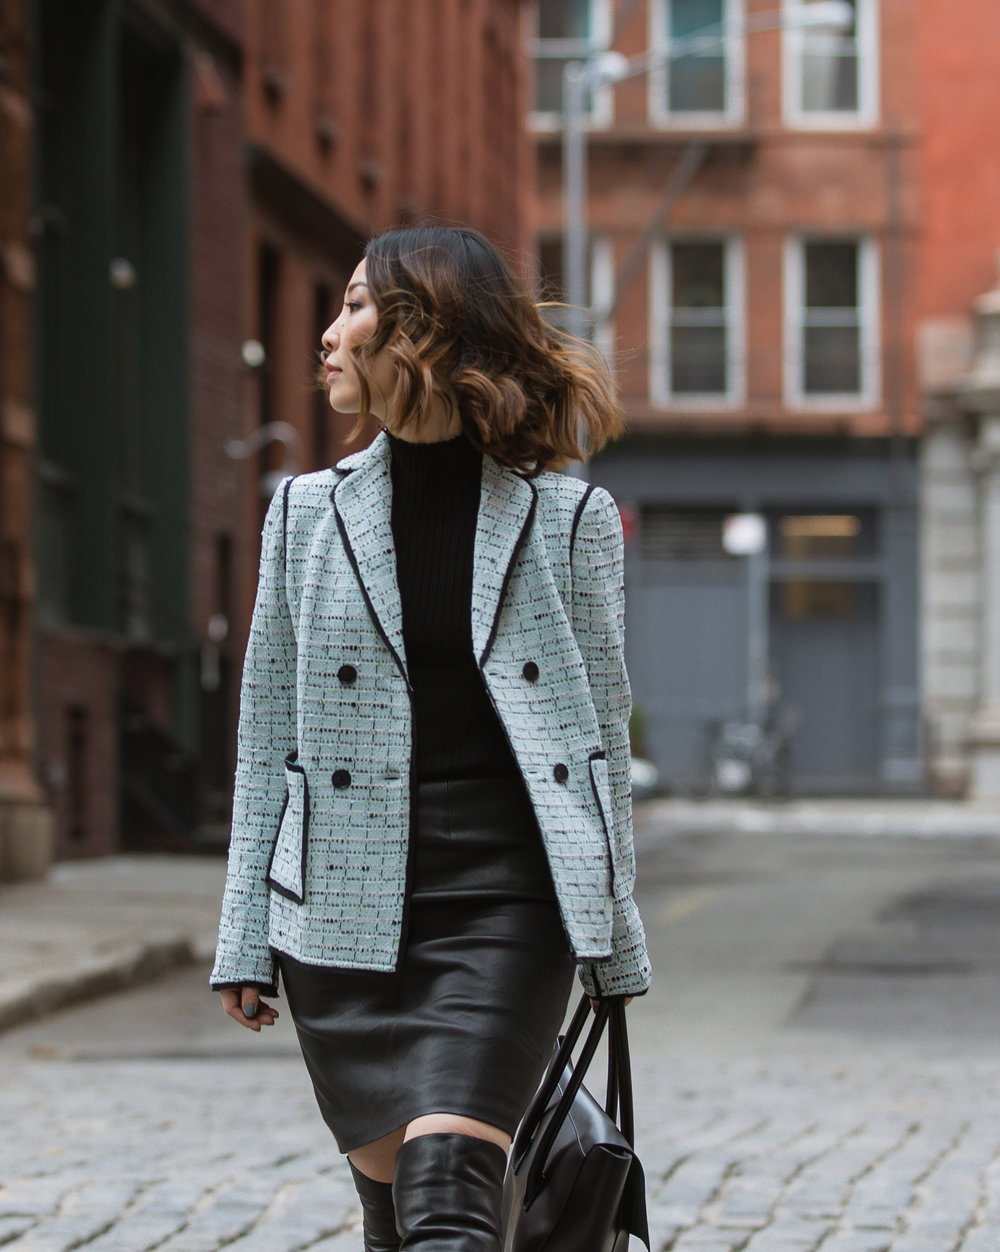 st john knits adriana multi tweed jacket nyc.JPG